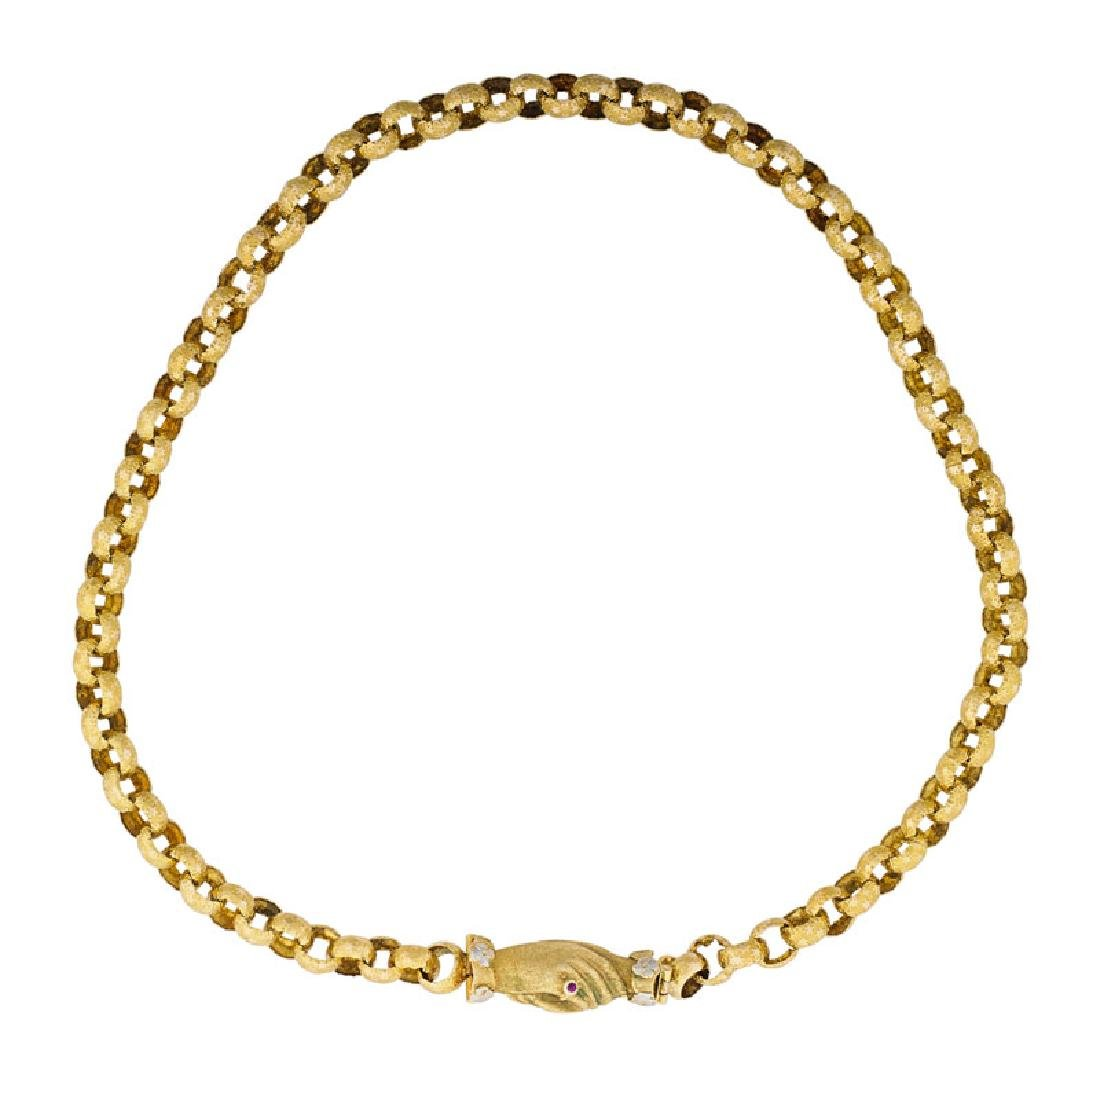 GEORGIAN STYLE YELLOW GOLD NECK CHAIN